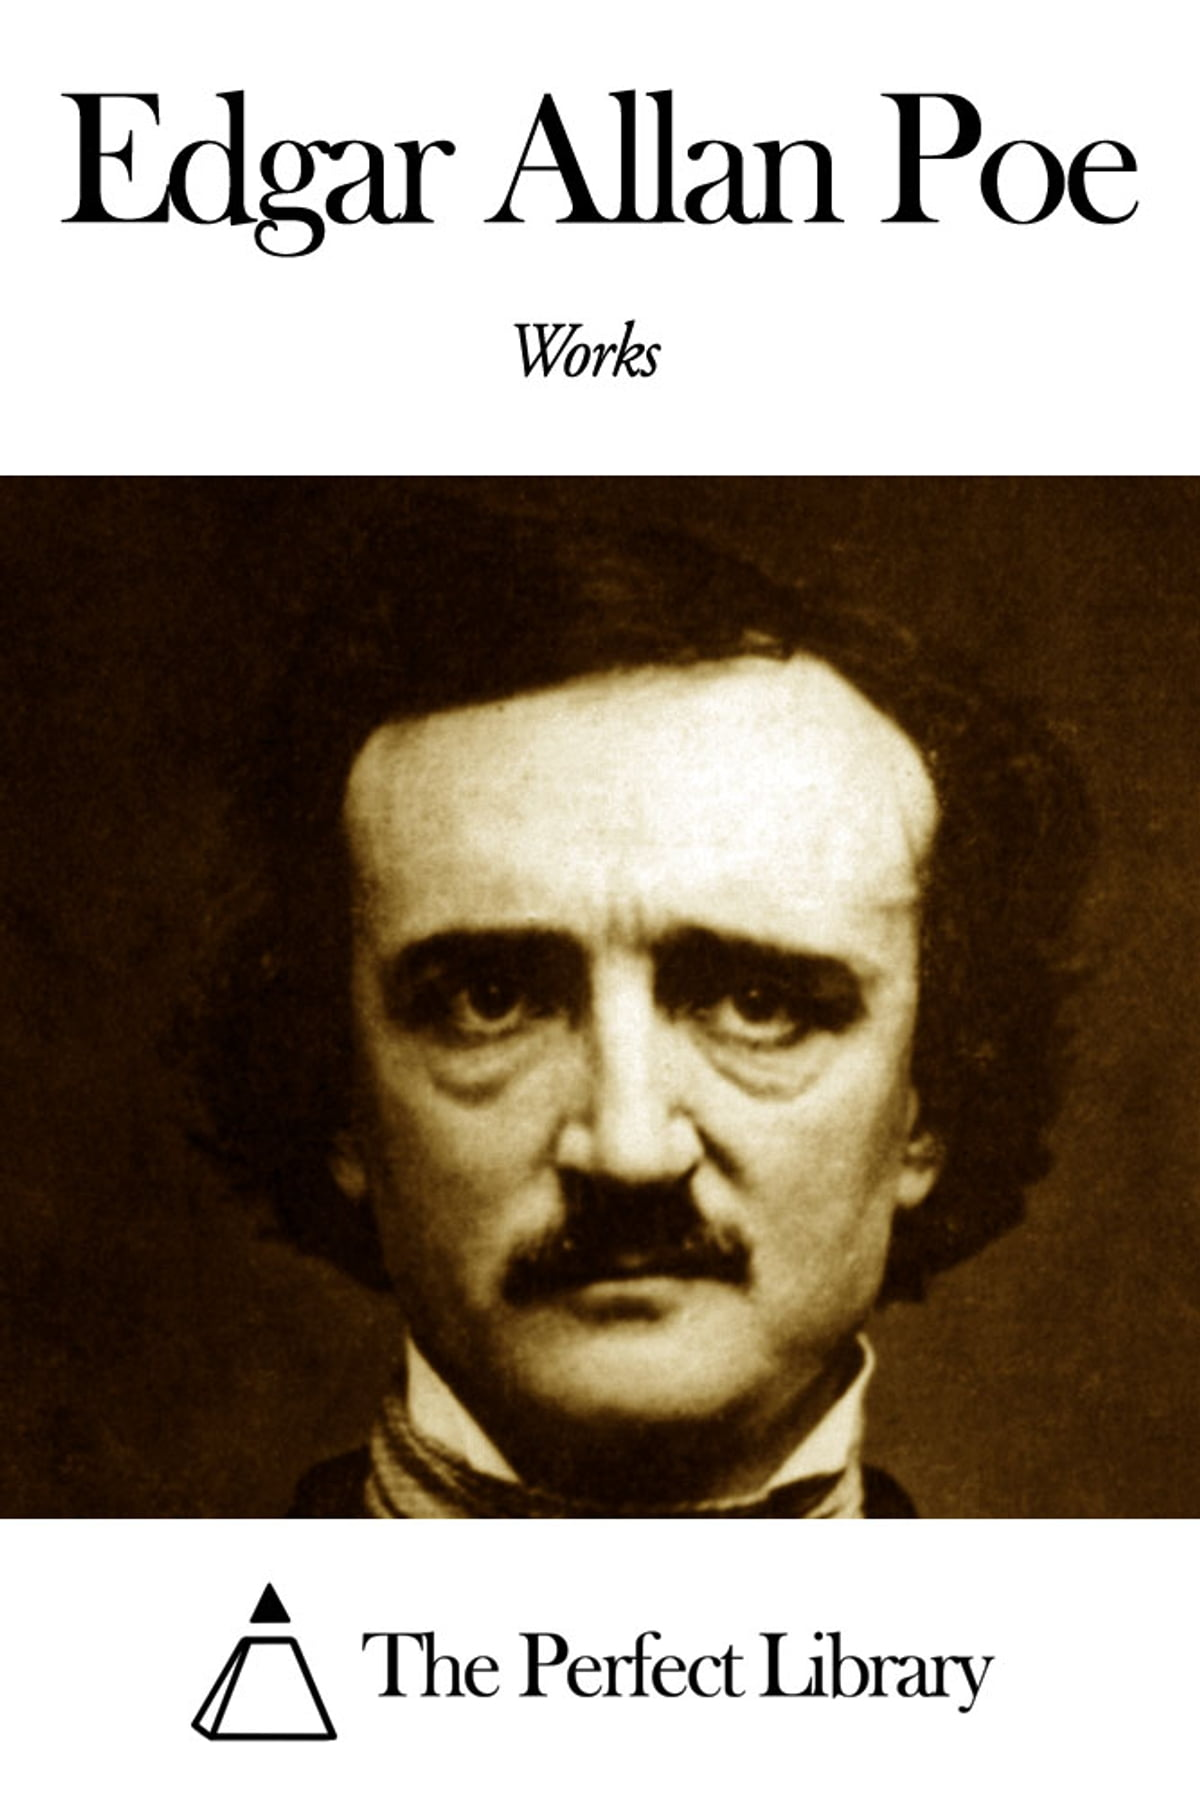 the life and works of edgar allan More inspirational edgar allan poe quotes about life 21) the ninety and nine are with dreams, content, but the hope of the world made new, is the hundredth man who is grimly bent on making those dreams come true .